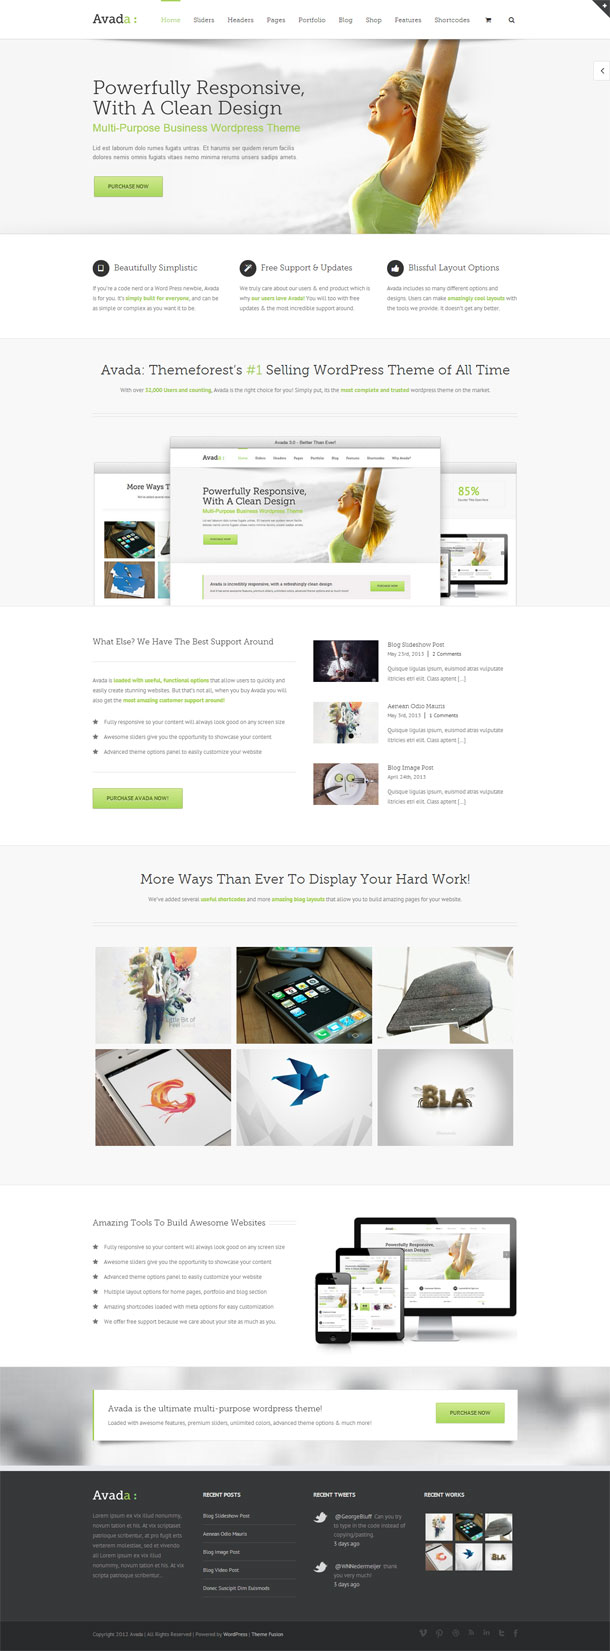 Avada Great WordPress Theme for 2014 image